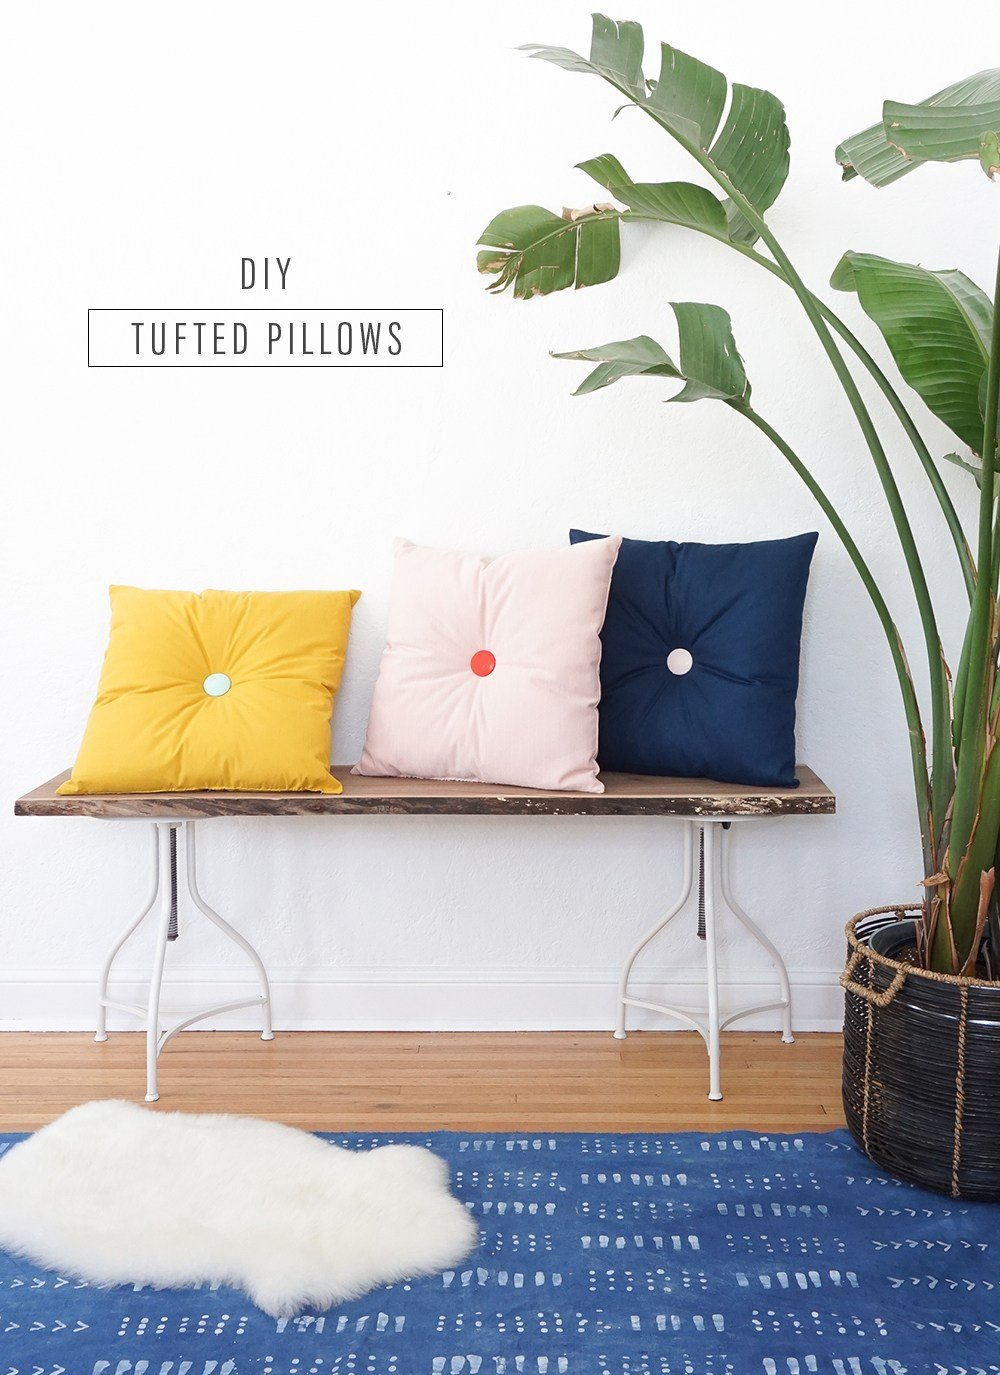 Colorful DIY Tufted Pillows